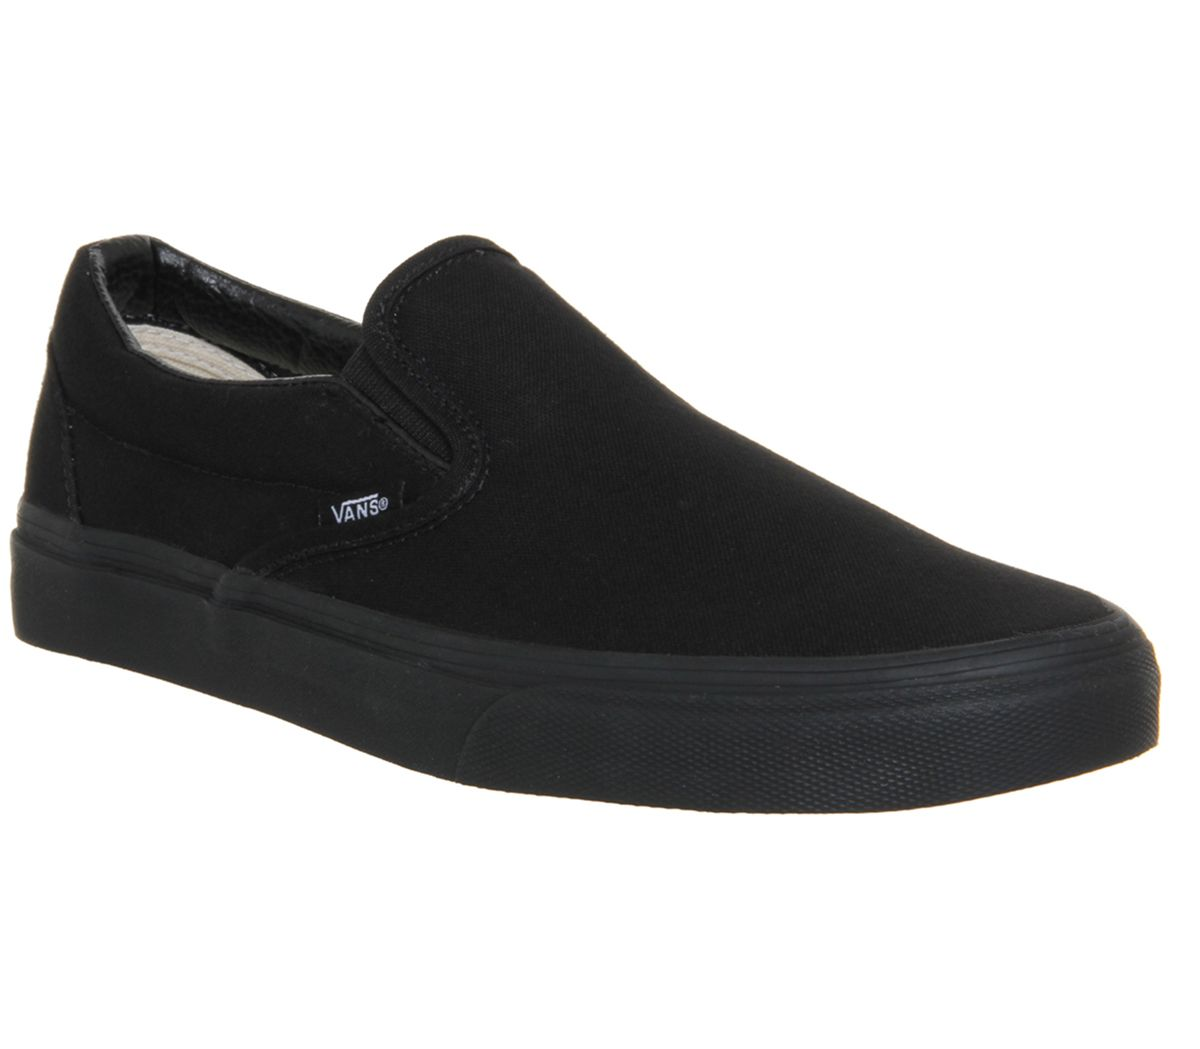 a32970ff28 Vans Classic Slip On Trainers Black Mono - Unisex Sports